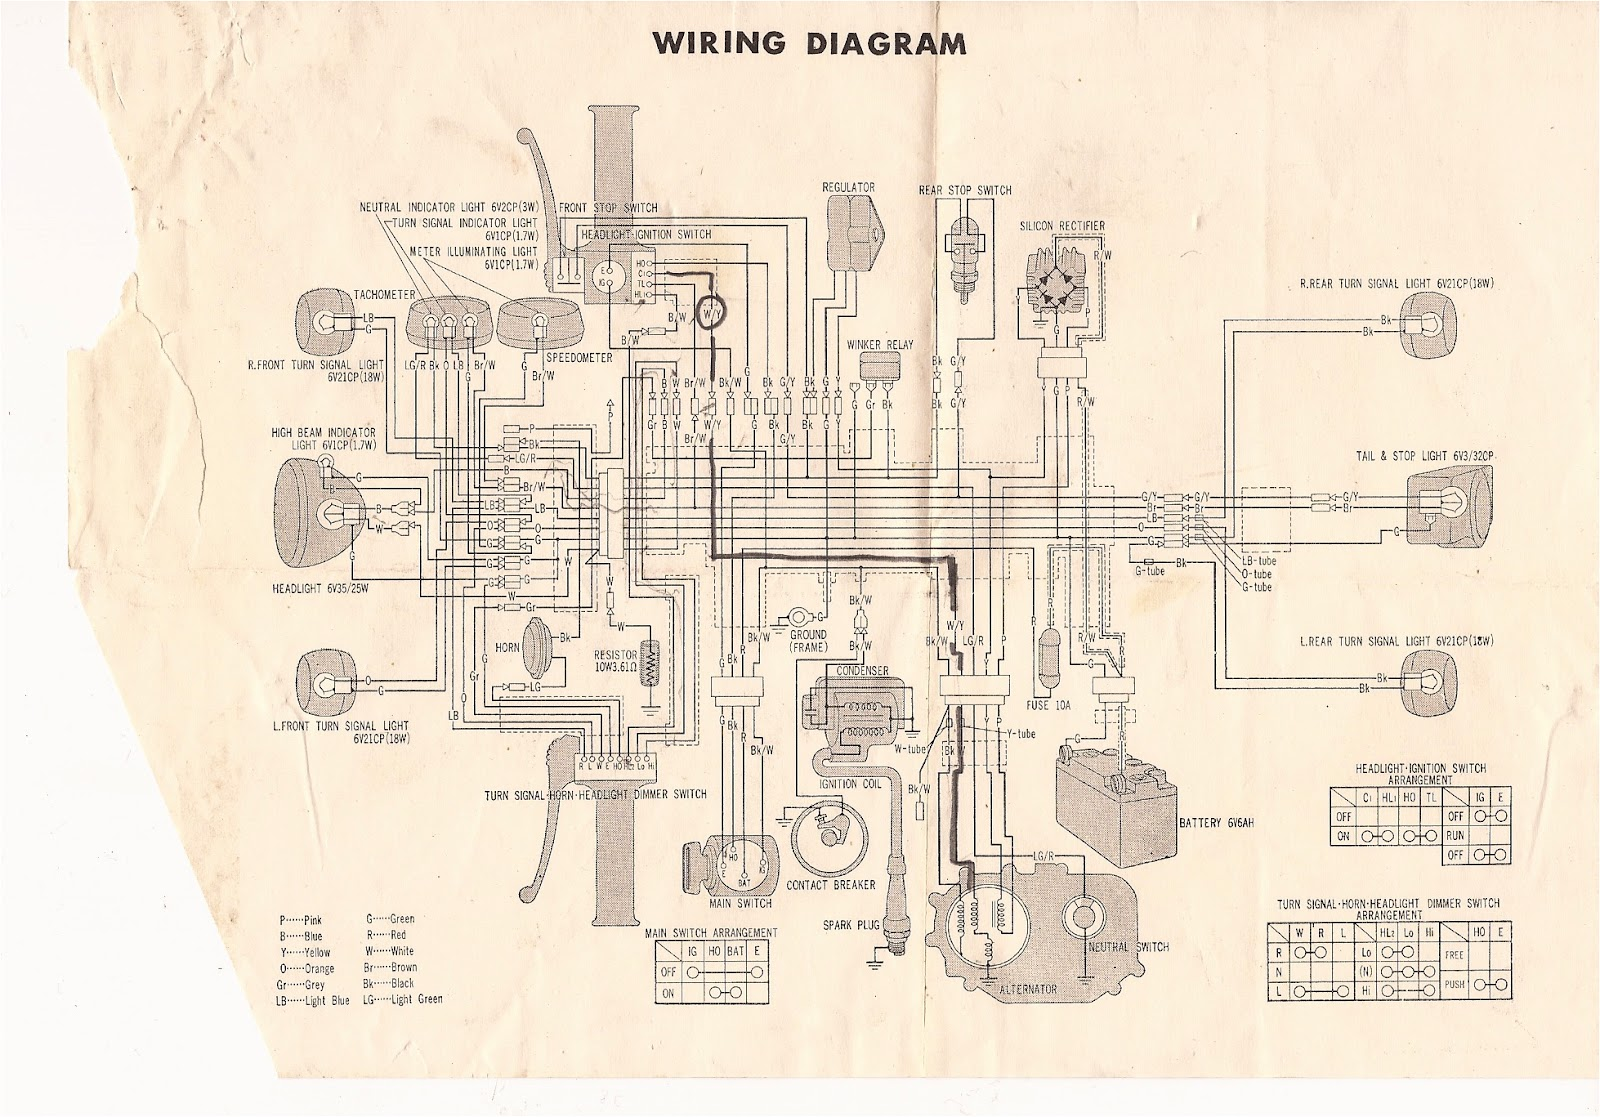 XL350+Wiring+diagram r4l may 2012 1978 honda hobbit wiring diagram at nearapp.co